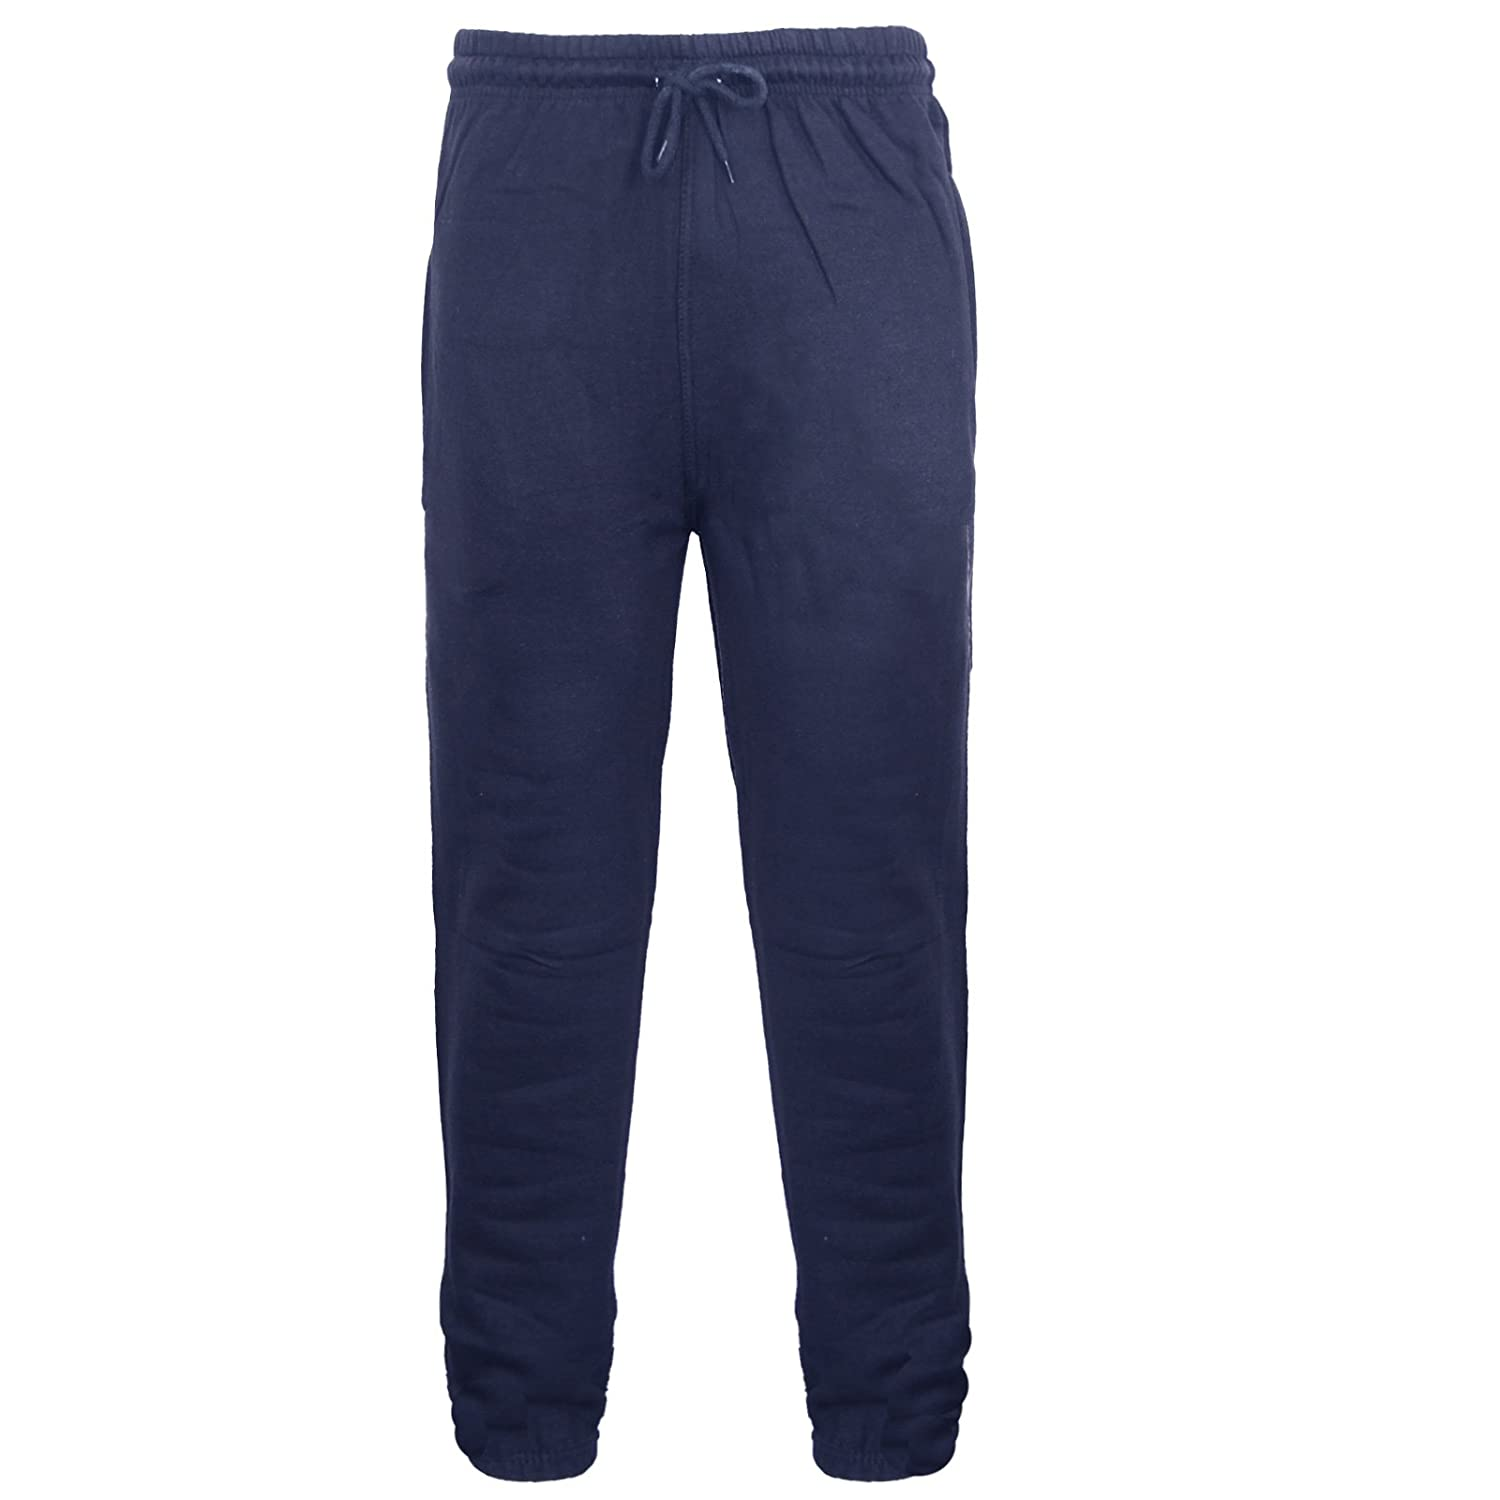 Mens Fleece Jogging Tracksuit Bottoms Pants Trousers Sizes S, M, L , XL, XXL ,PLUS BIG SIZES 3XL 4XL 5XL 6XL 3/4 LENGTH AVAILABLE